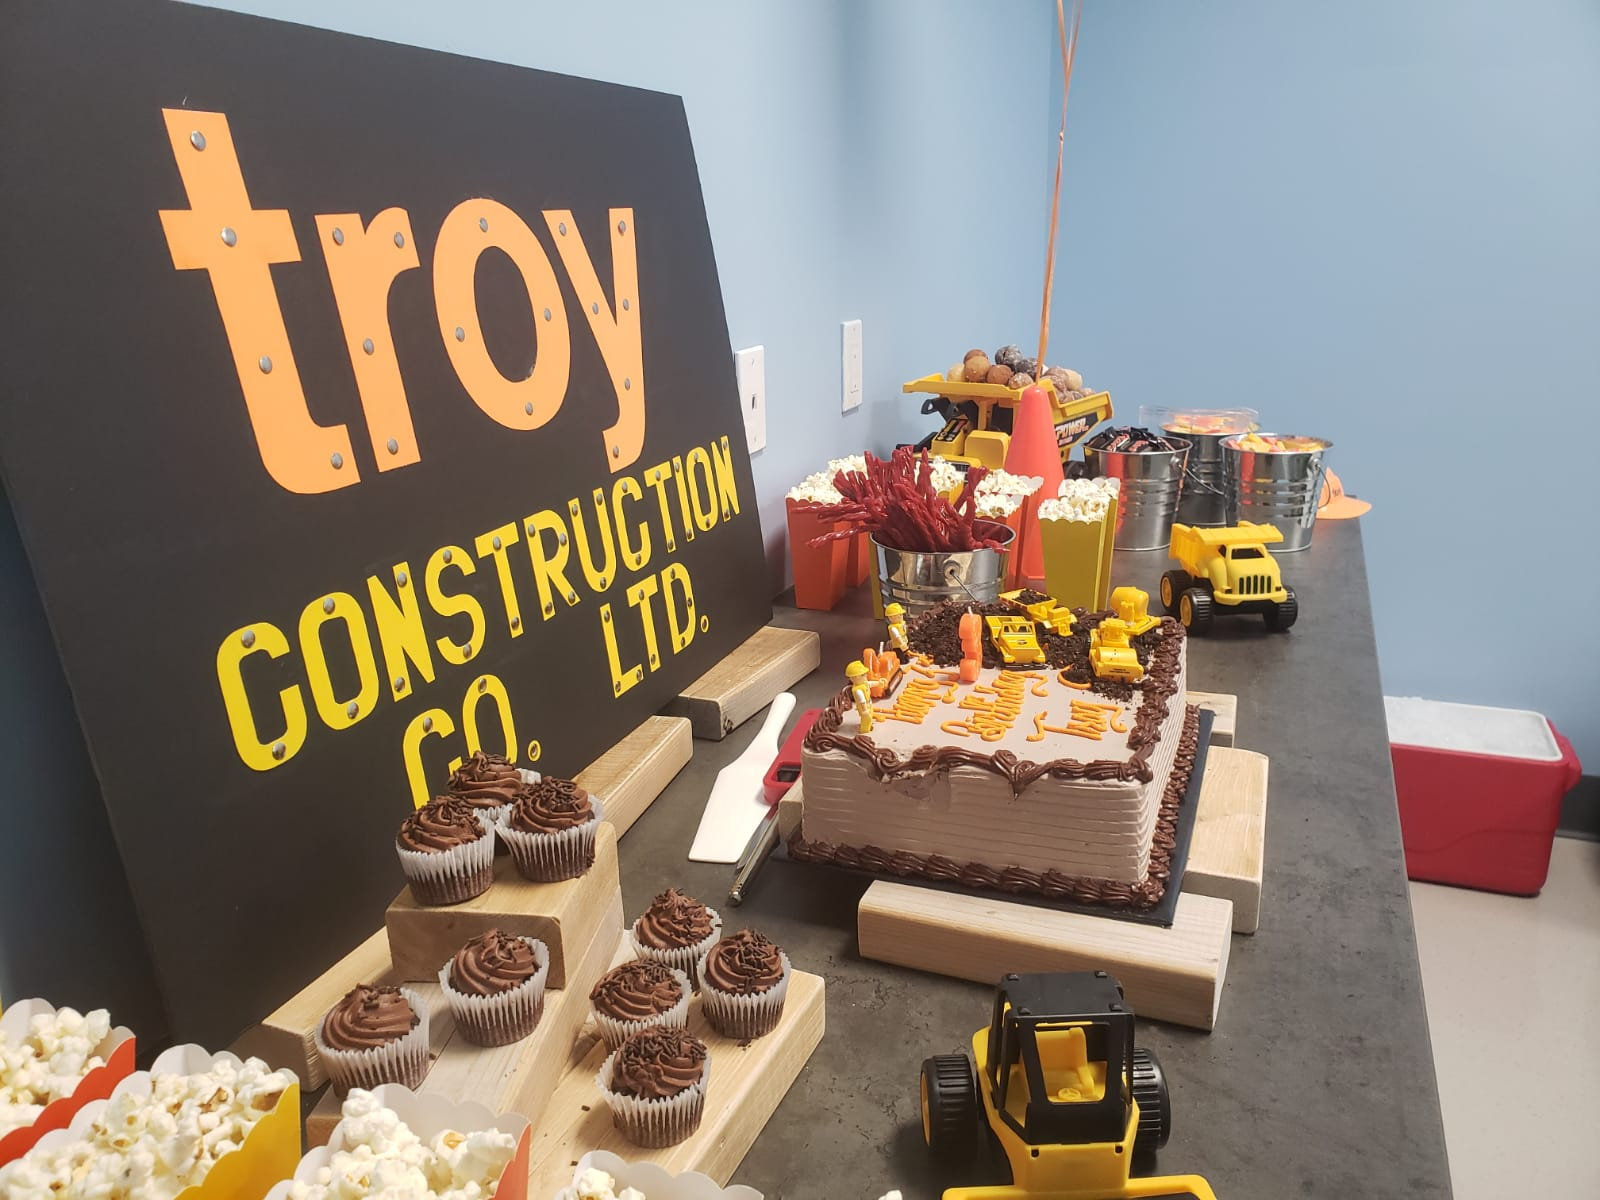 Troy's Construction theme